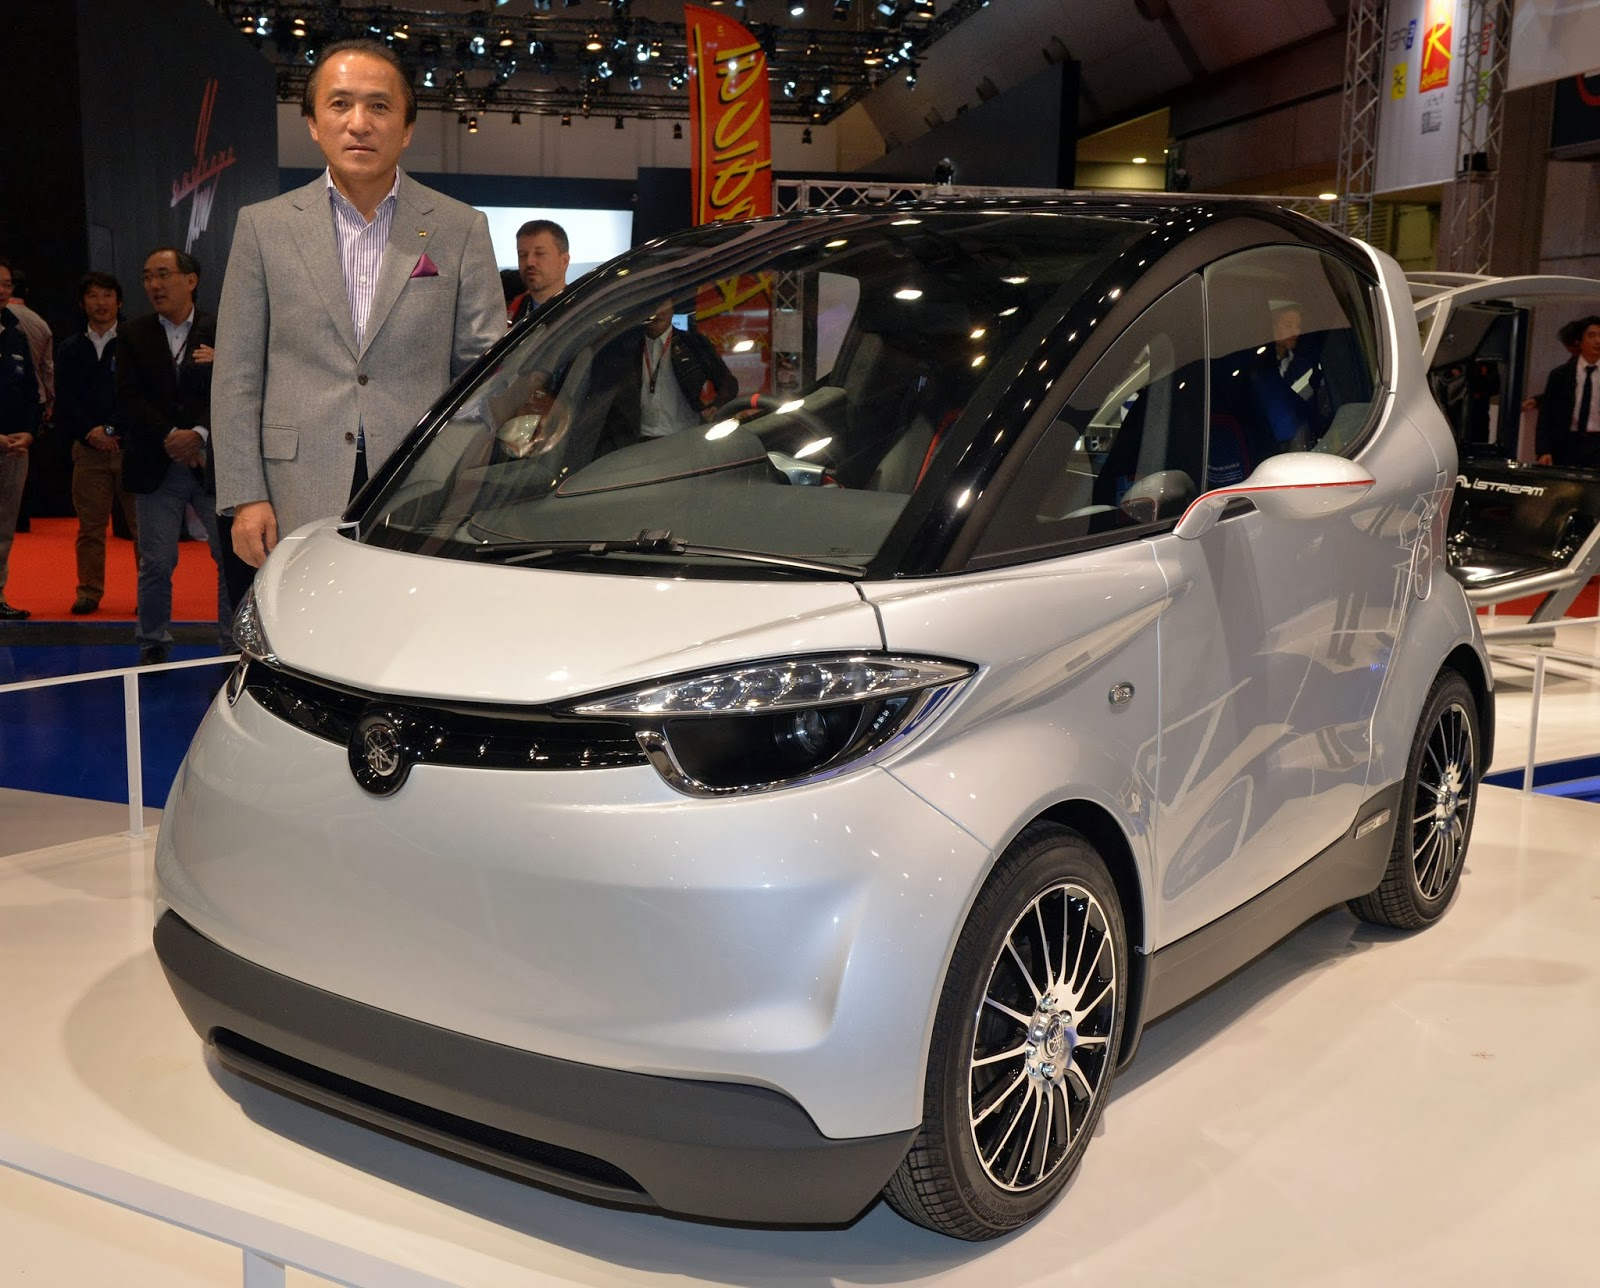 Auto, Auto Industry, Business, Car, Car Show, Company, Designer, Economy, Ferrari, Honda, Japan, Mercedes Benz, Model, Motor Show, Technology, Tokyo, Tokyo Motor Show, Vehicle,